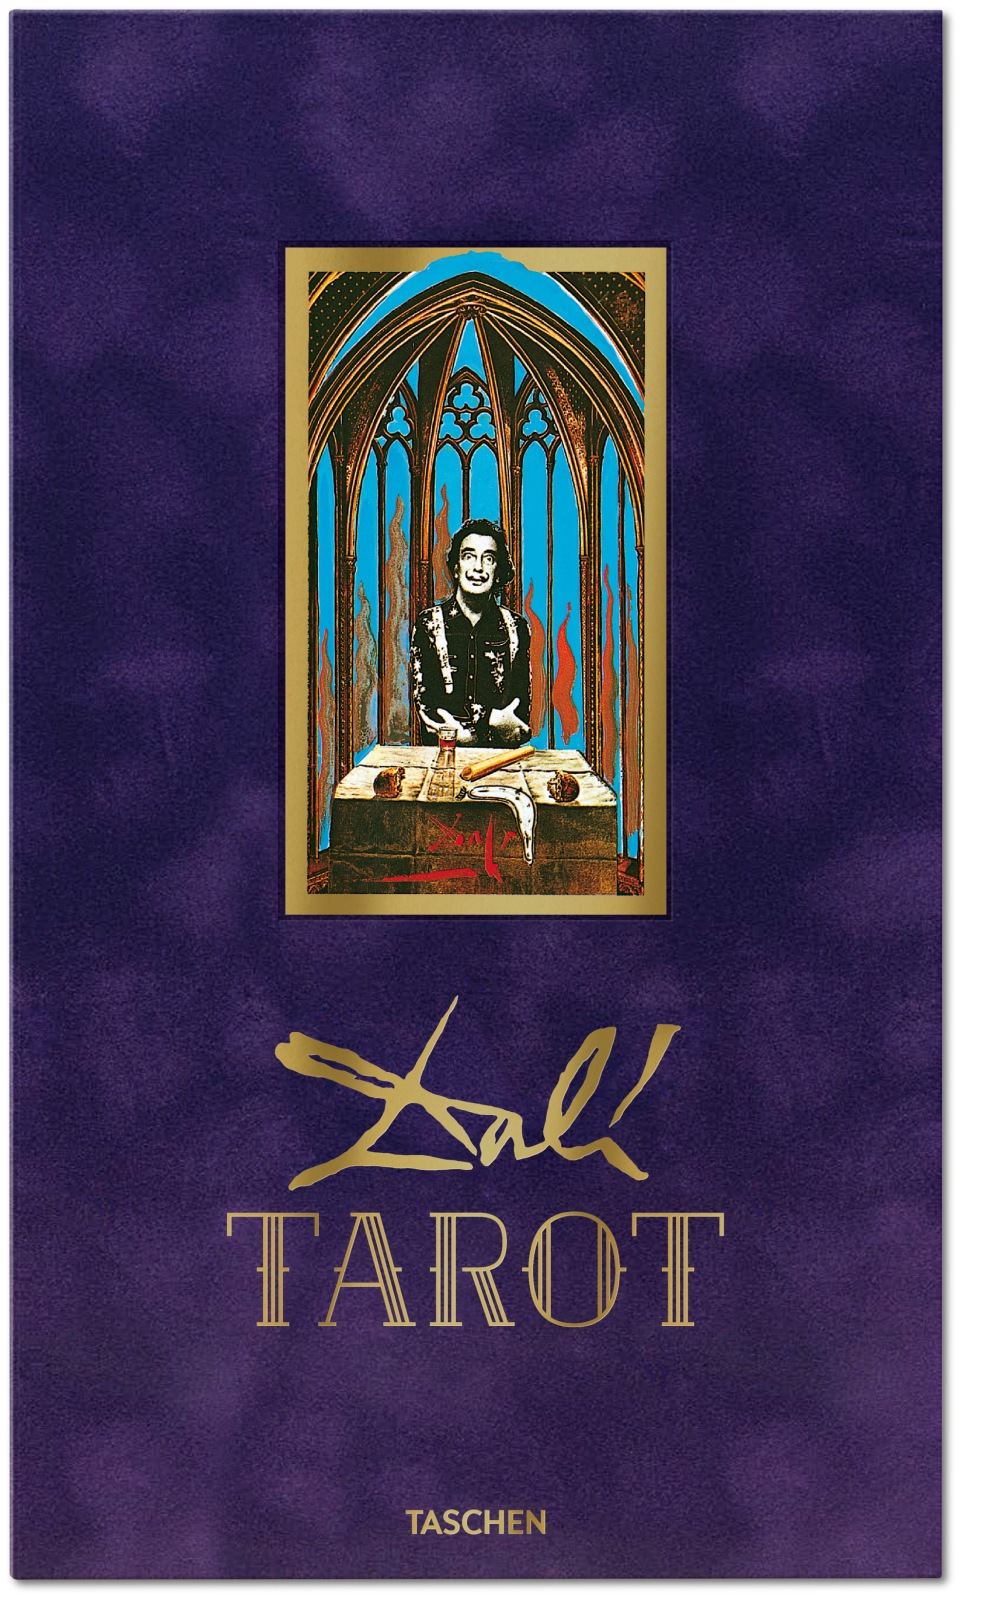 DALI_TAROT_NEW_EDITION_VA_INT_BOX003_44640